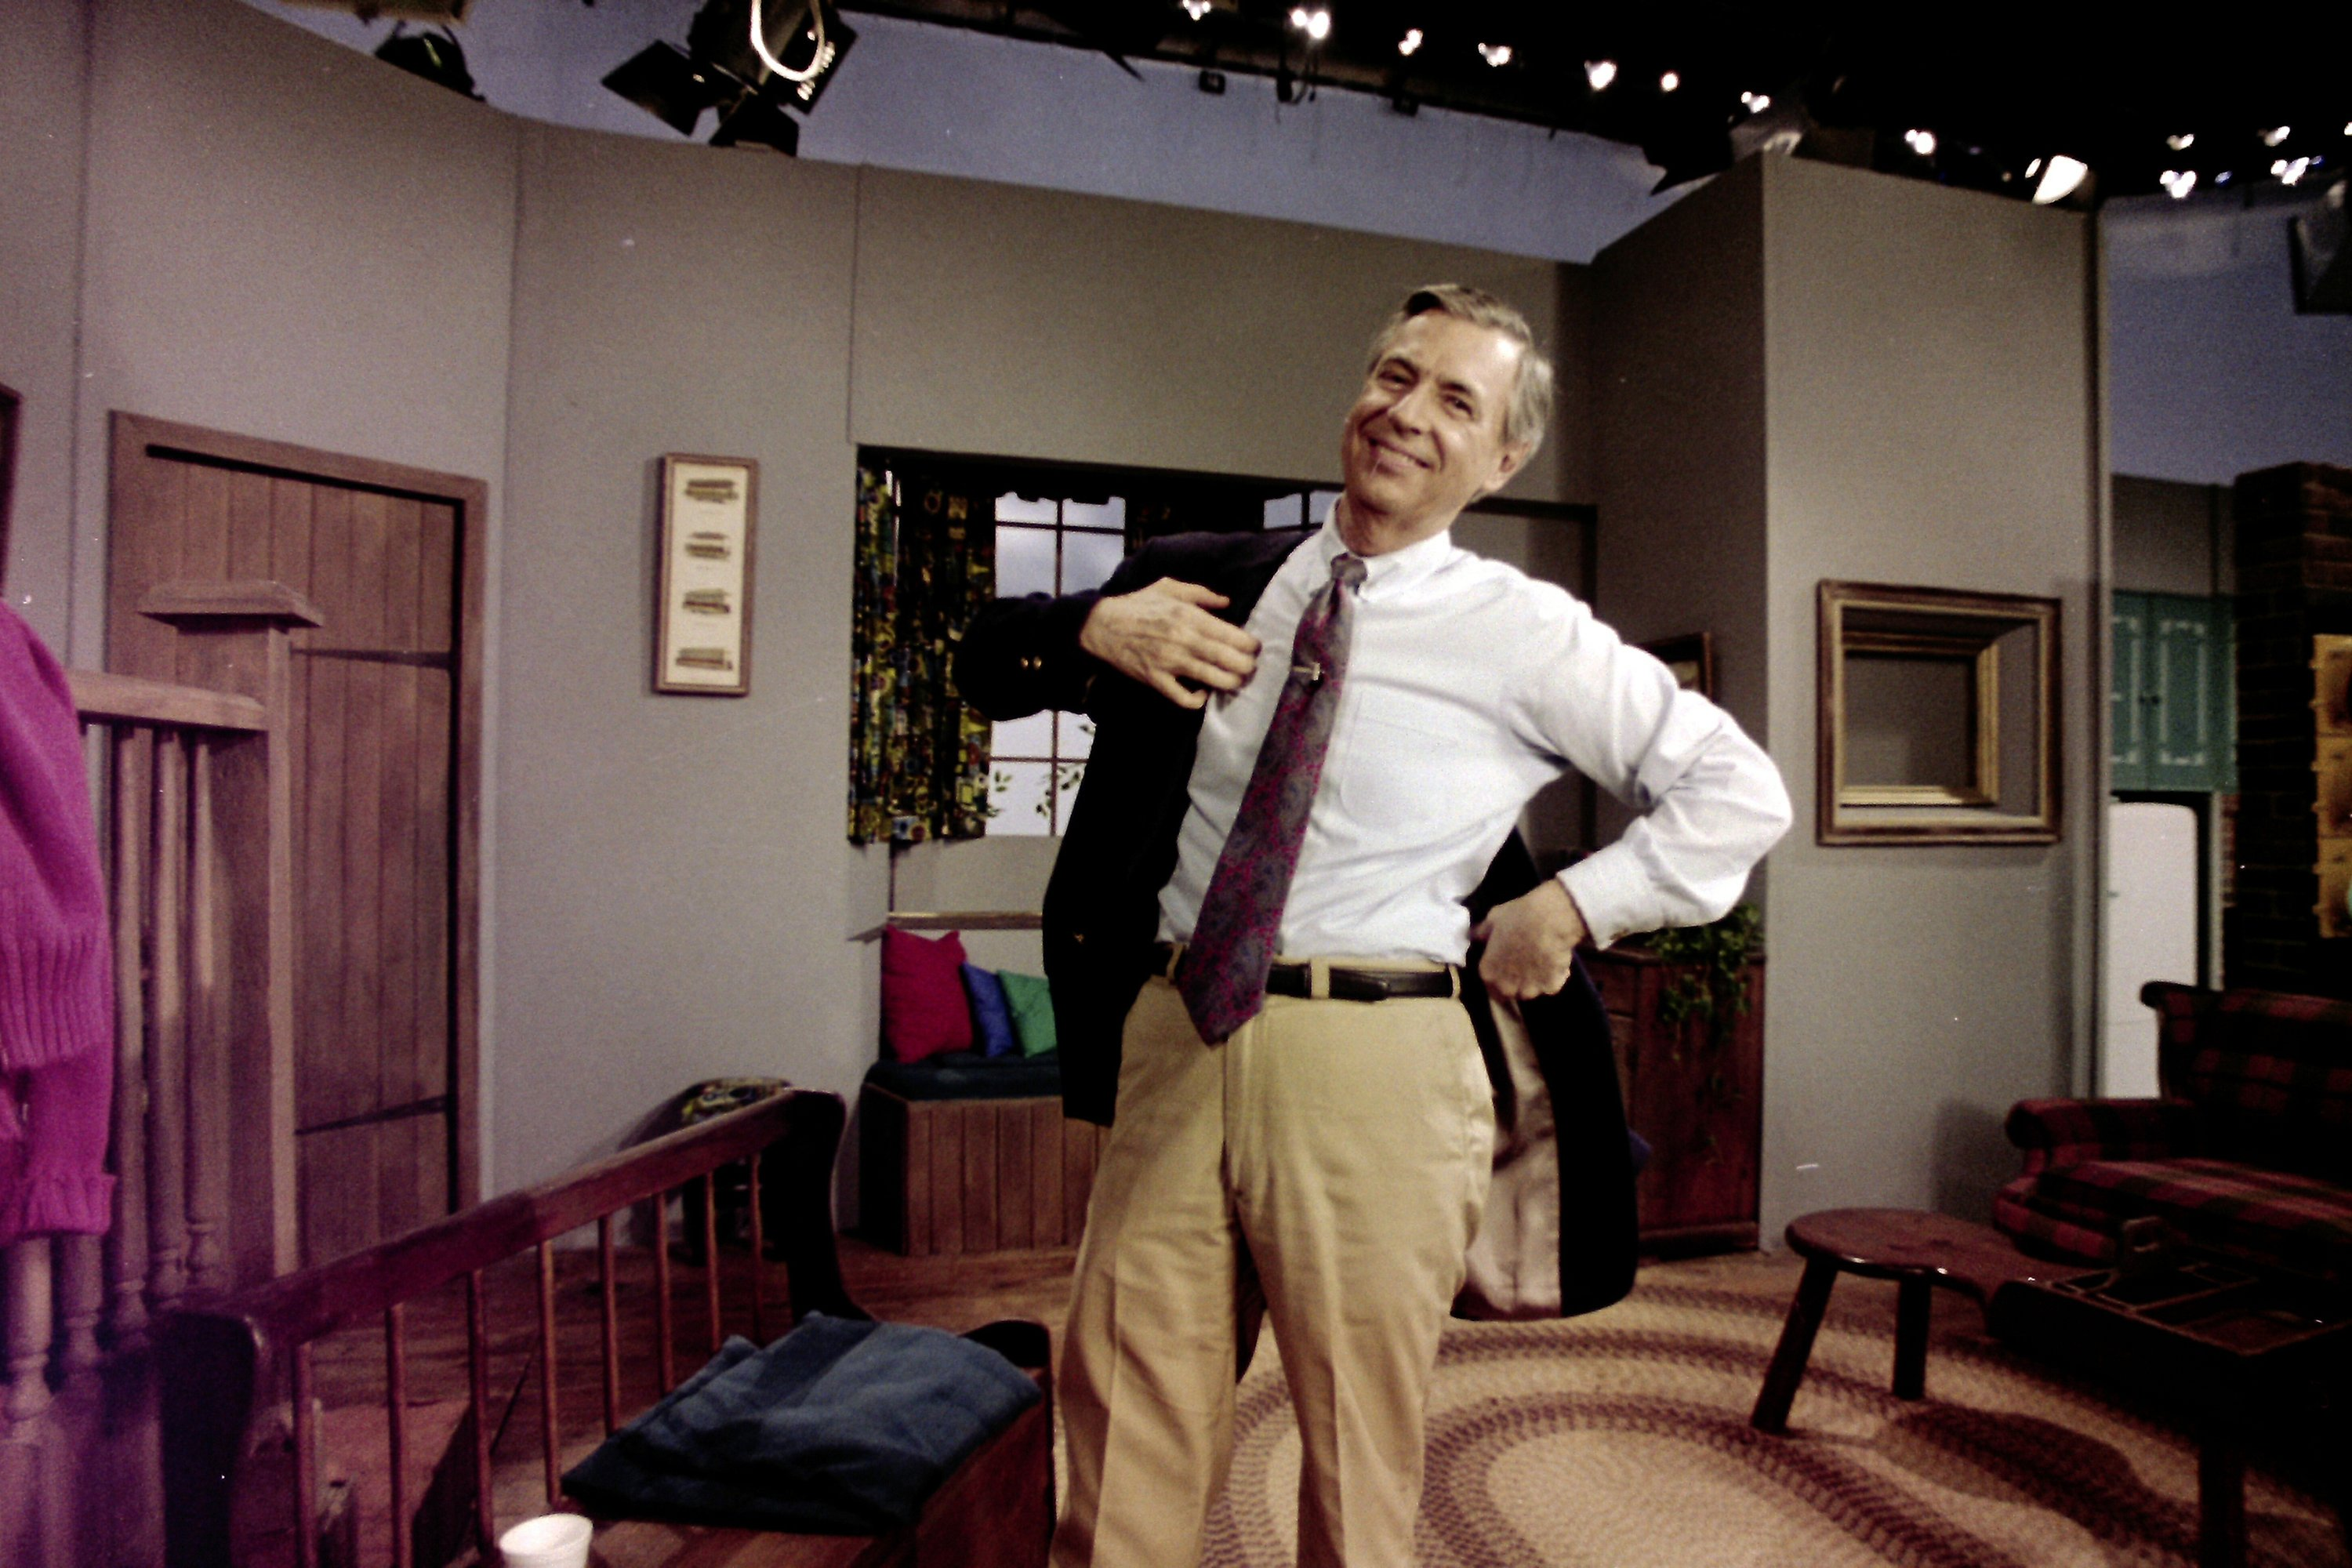 Across Mister Rogers Actual Neighborhoods His Faith Echoes